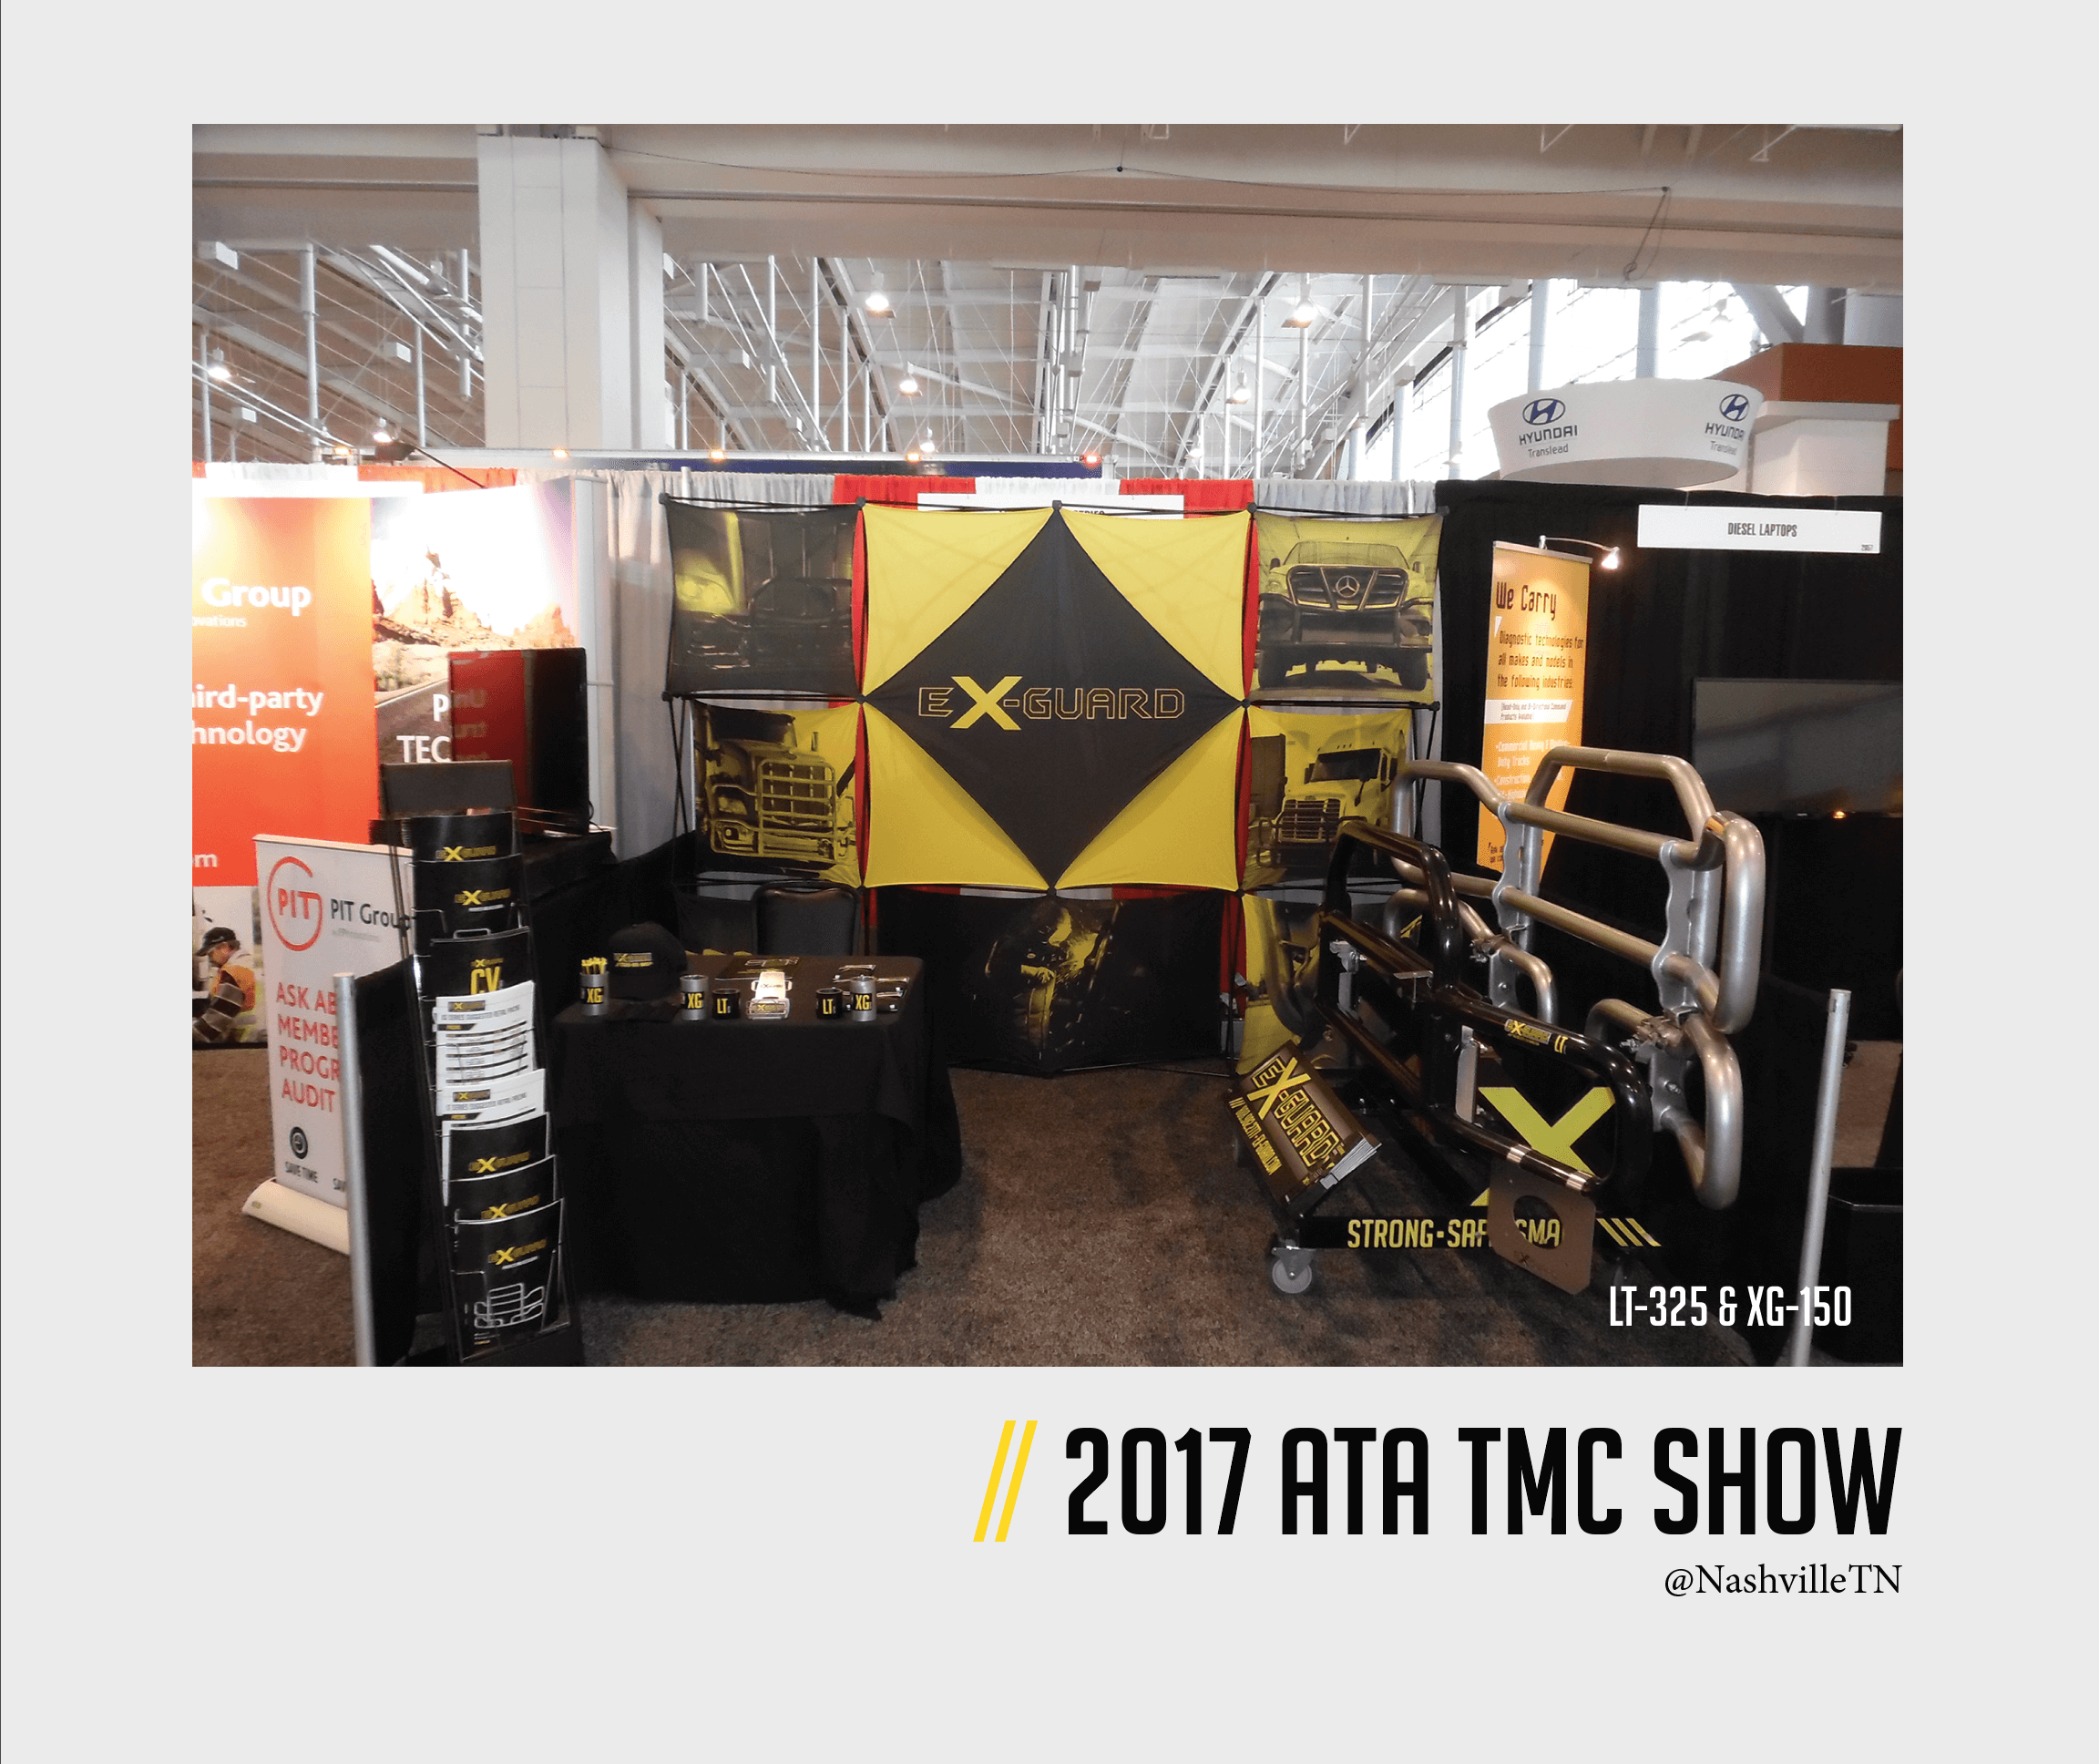 2017 ATA TMC Show, Ex-Guard's Booth